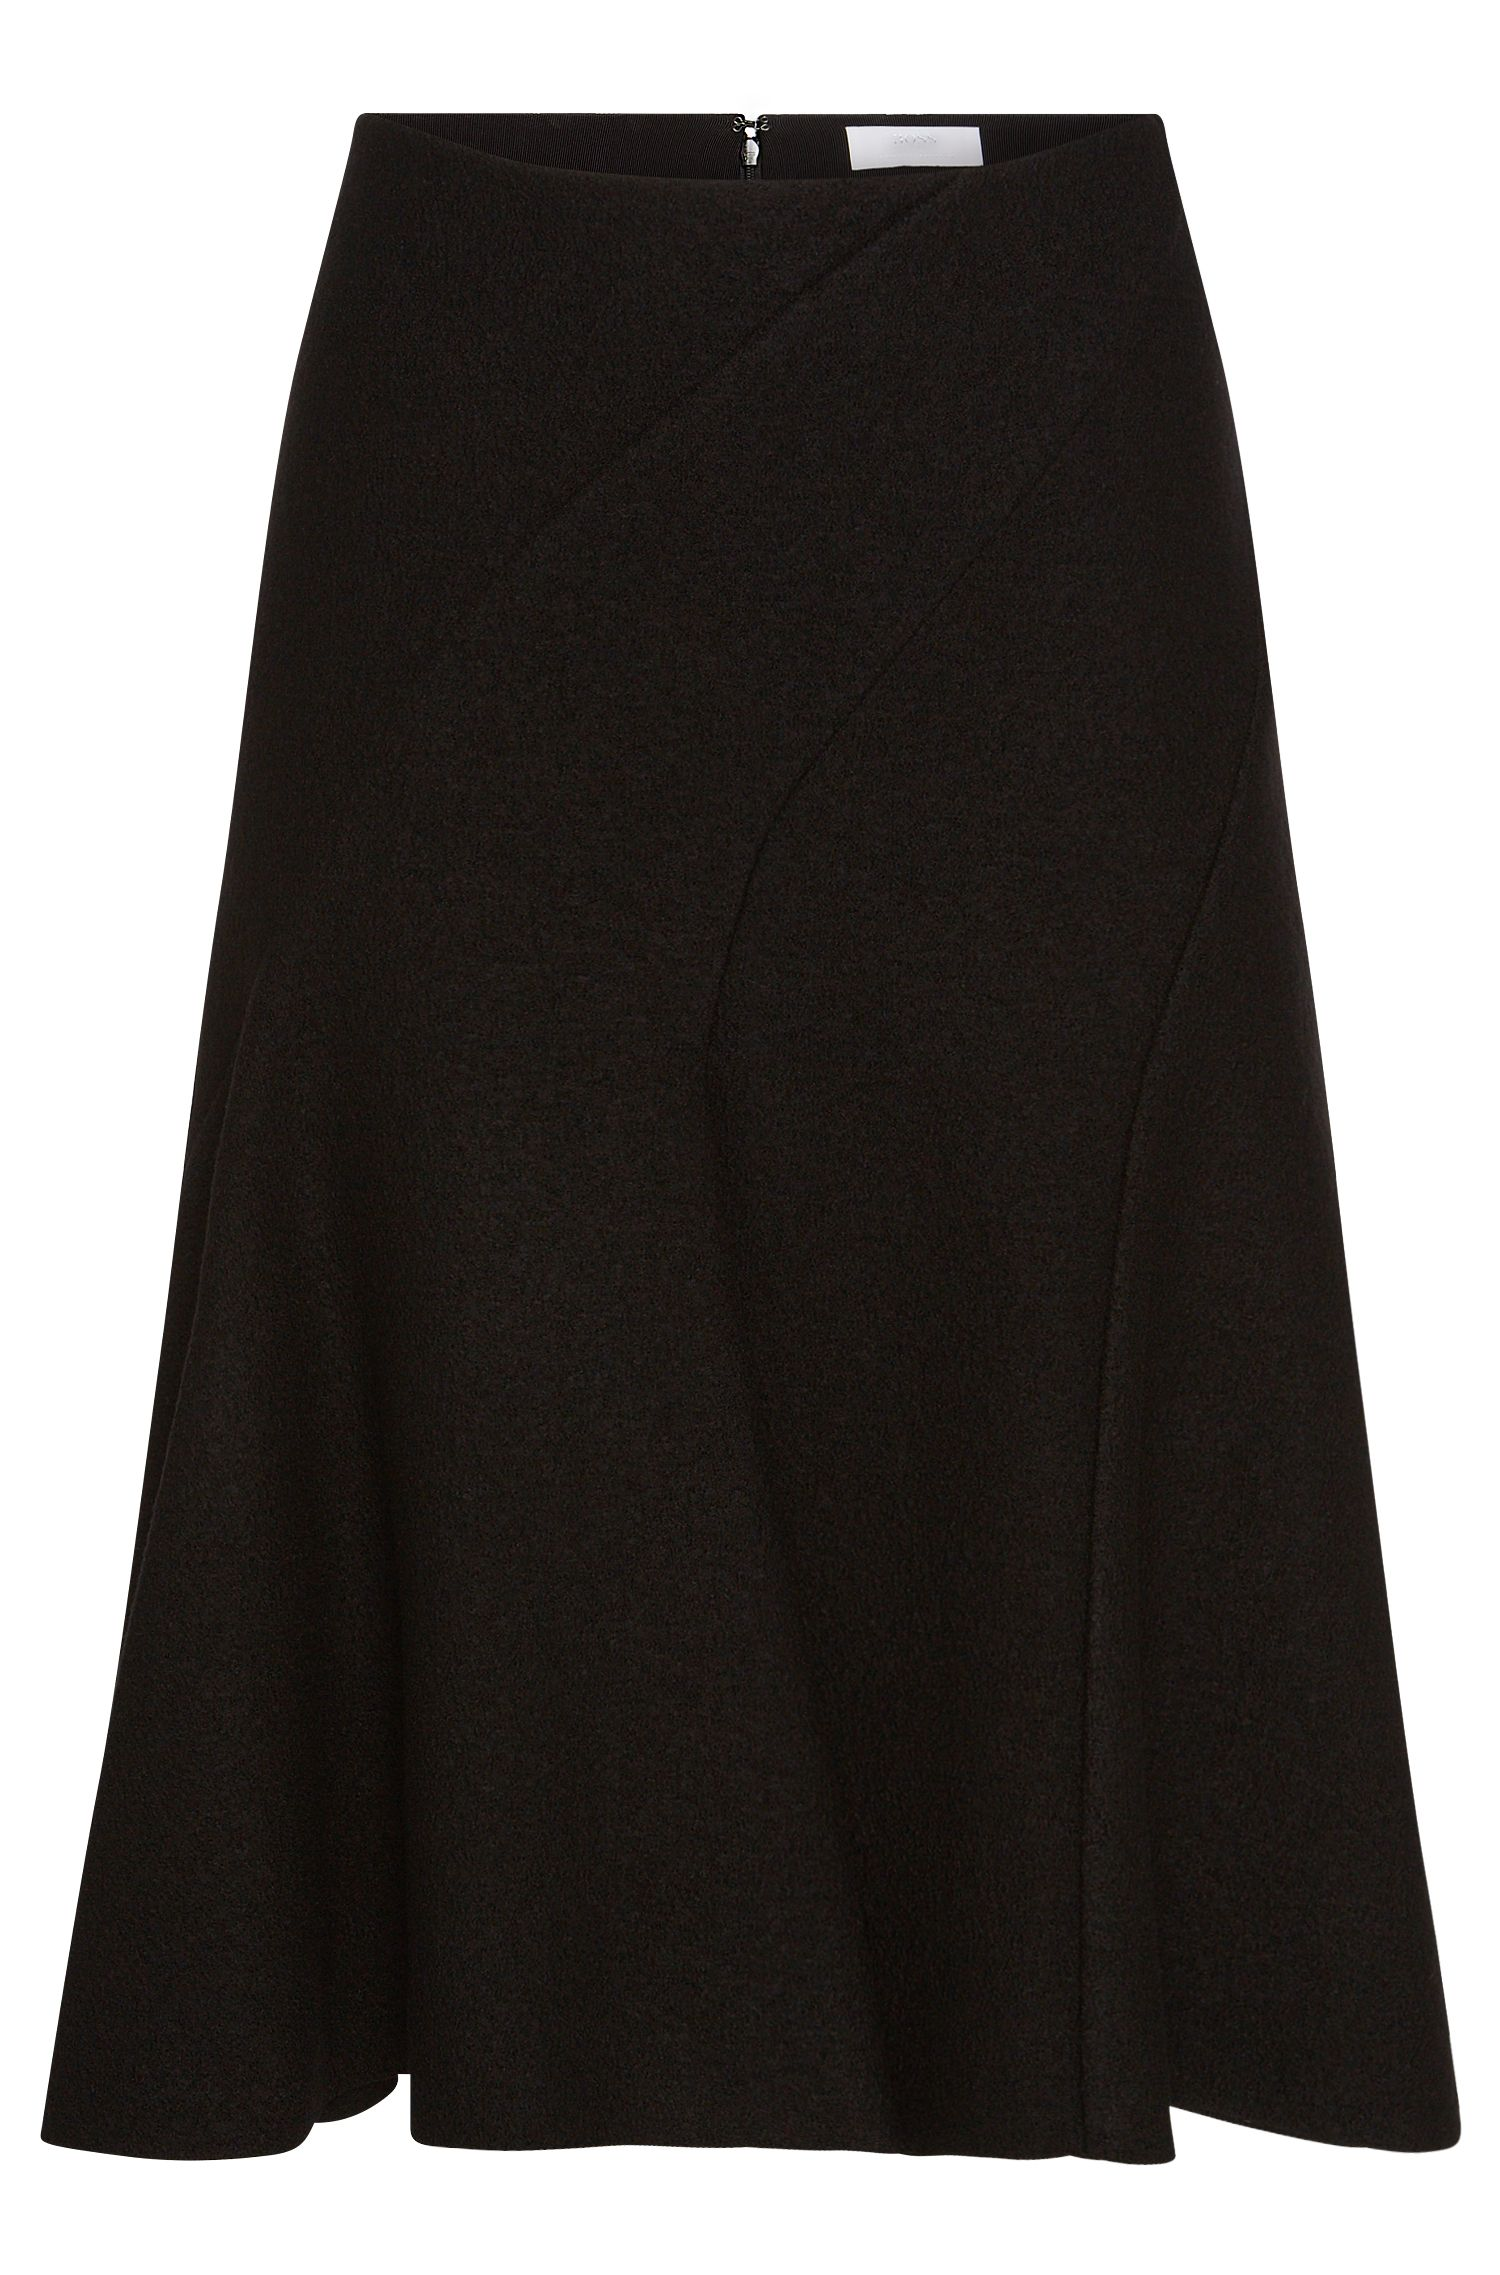 'FS_Vipera' | Bonded Wool A-Line Skirt